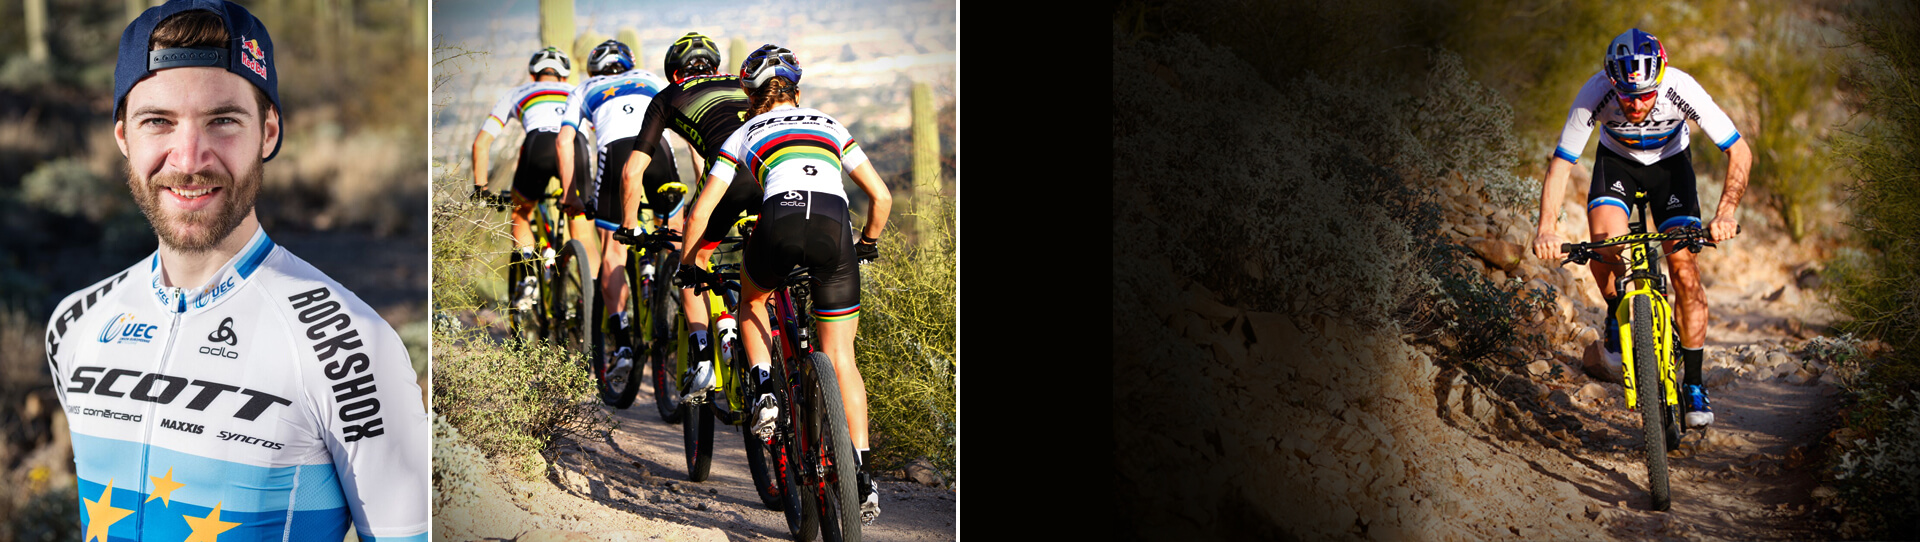 ODLO Cycling & Mountainbiking in Summer Sports Underwear and Perormance